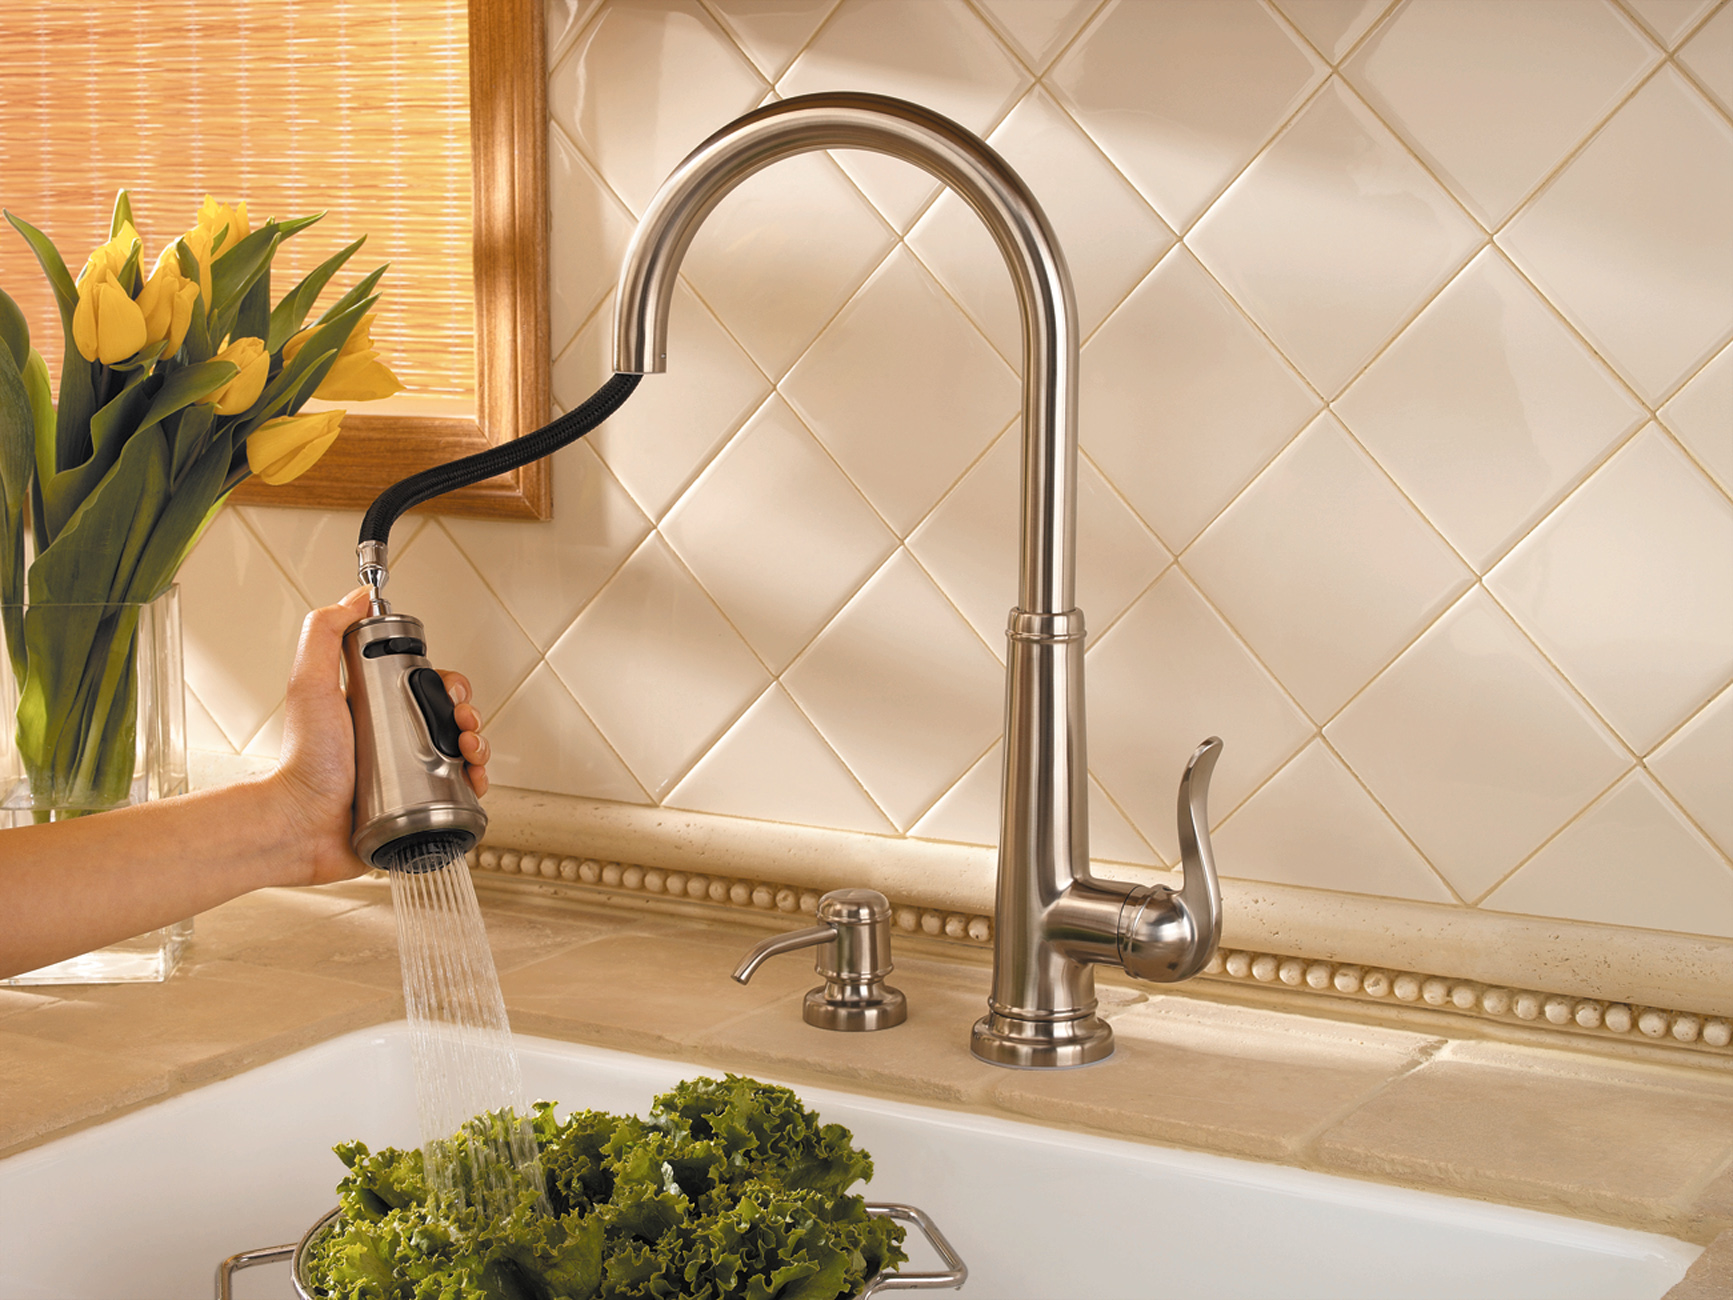 dulley column color graphics photo this tall spout kitchen faucet has a long pullout sprayer for convenience and water savings photo credit price pfister